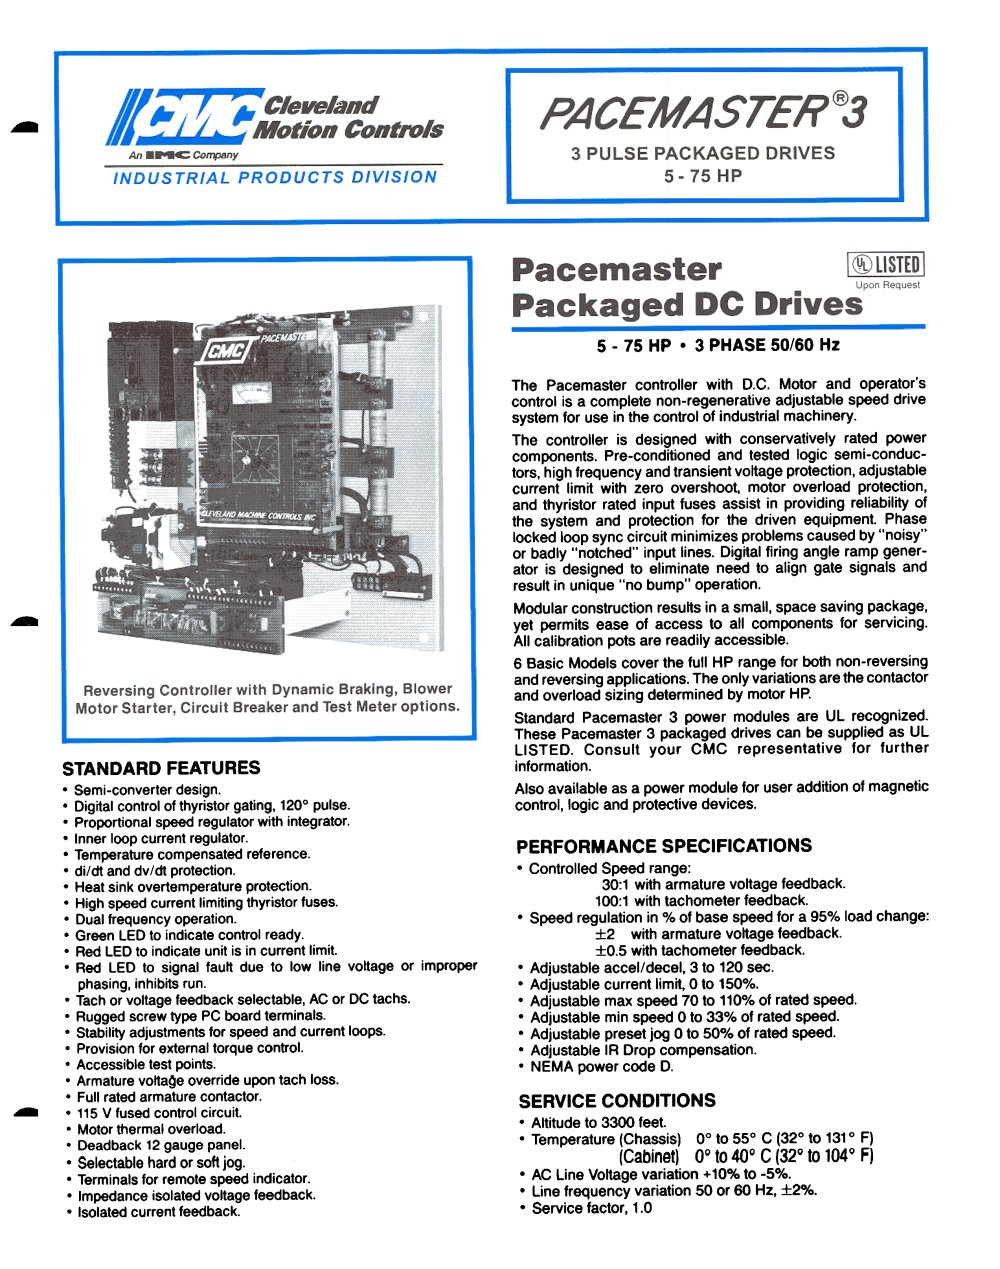 DC Drives PACEMASTER 3 Datasheet - Cleveland Motion Controls - PDF